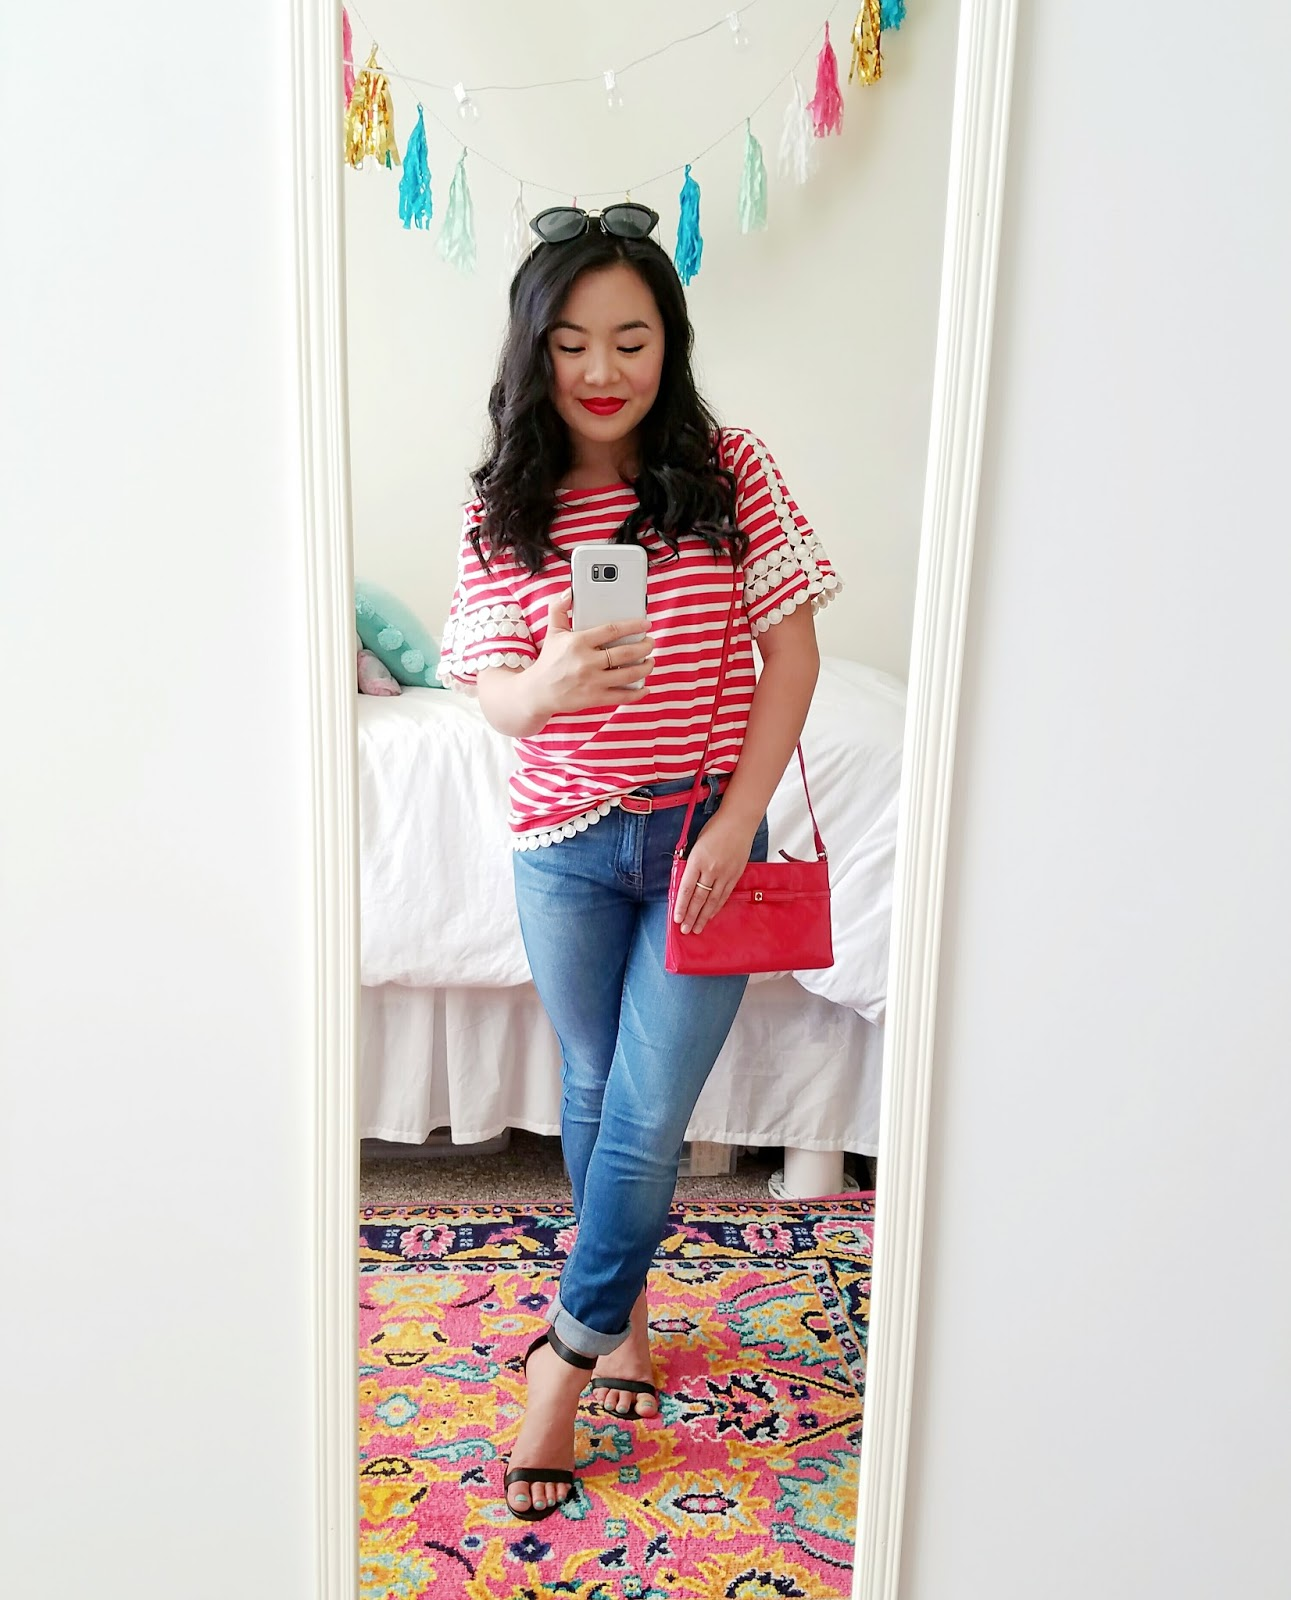 J. Crew at Nordstrom Red Striped Top